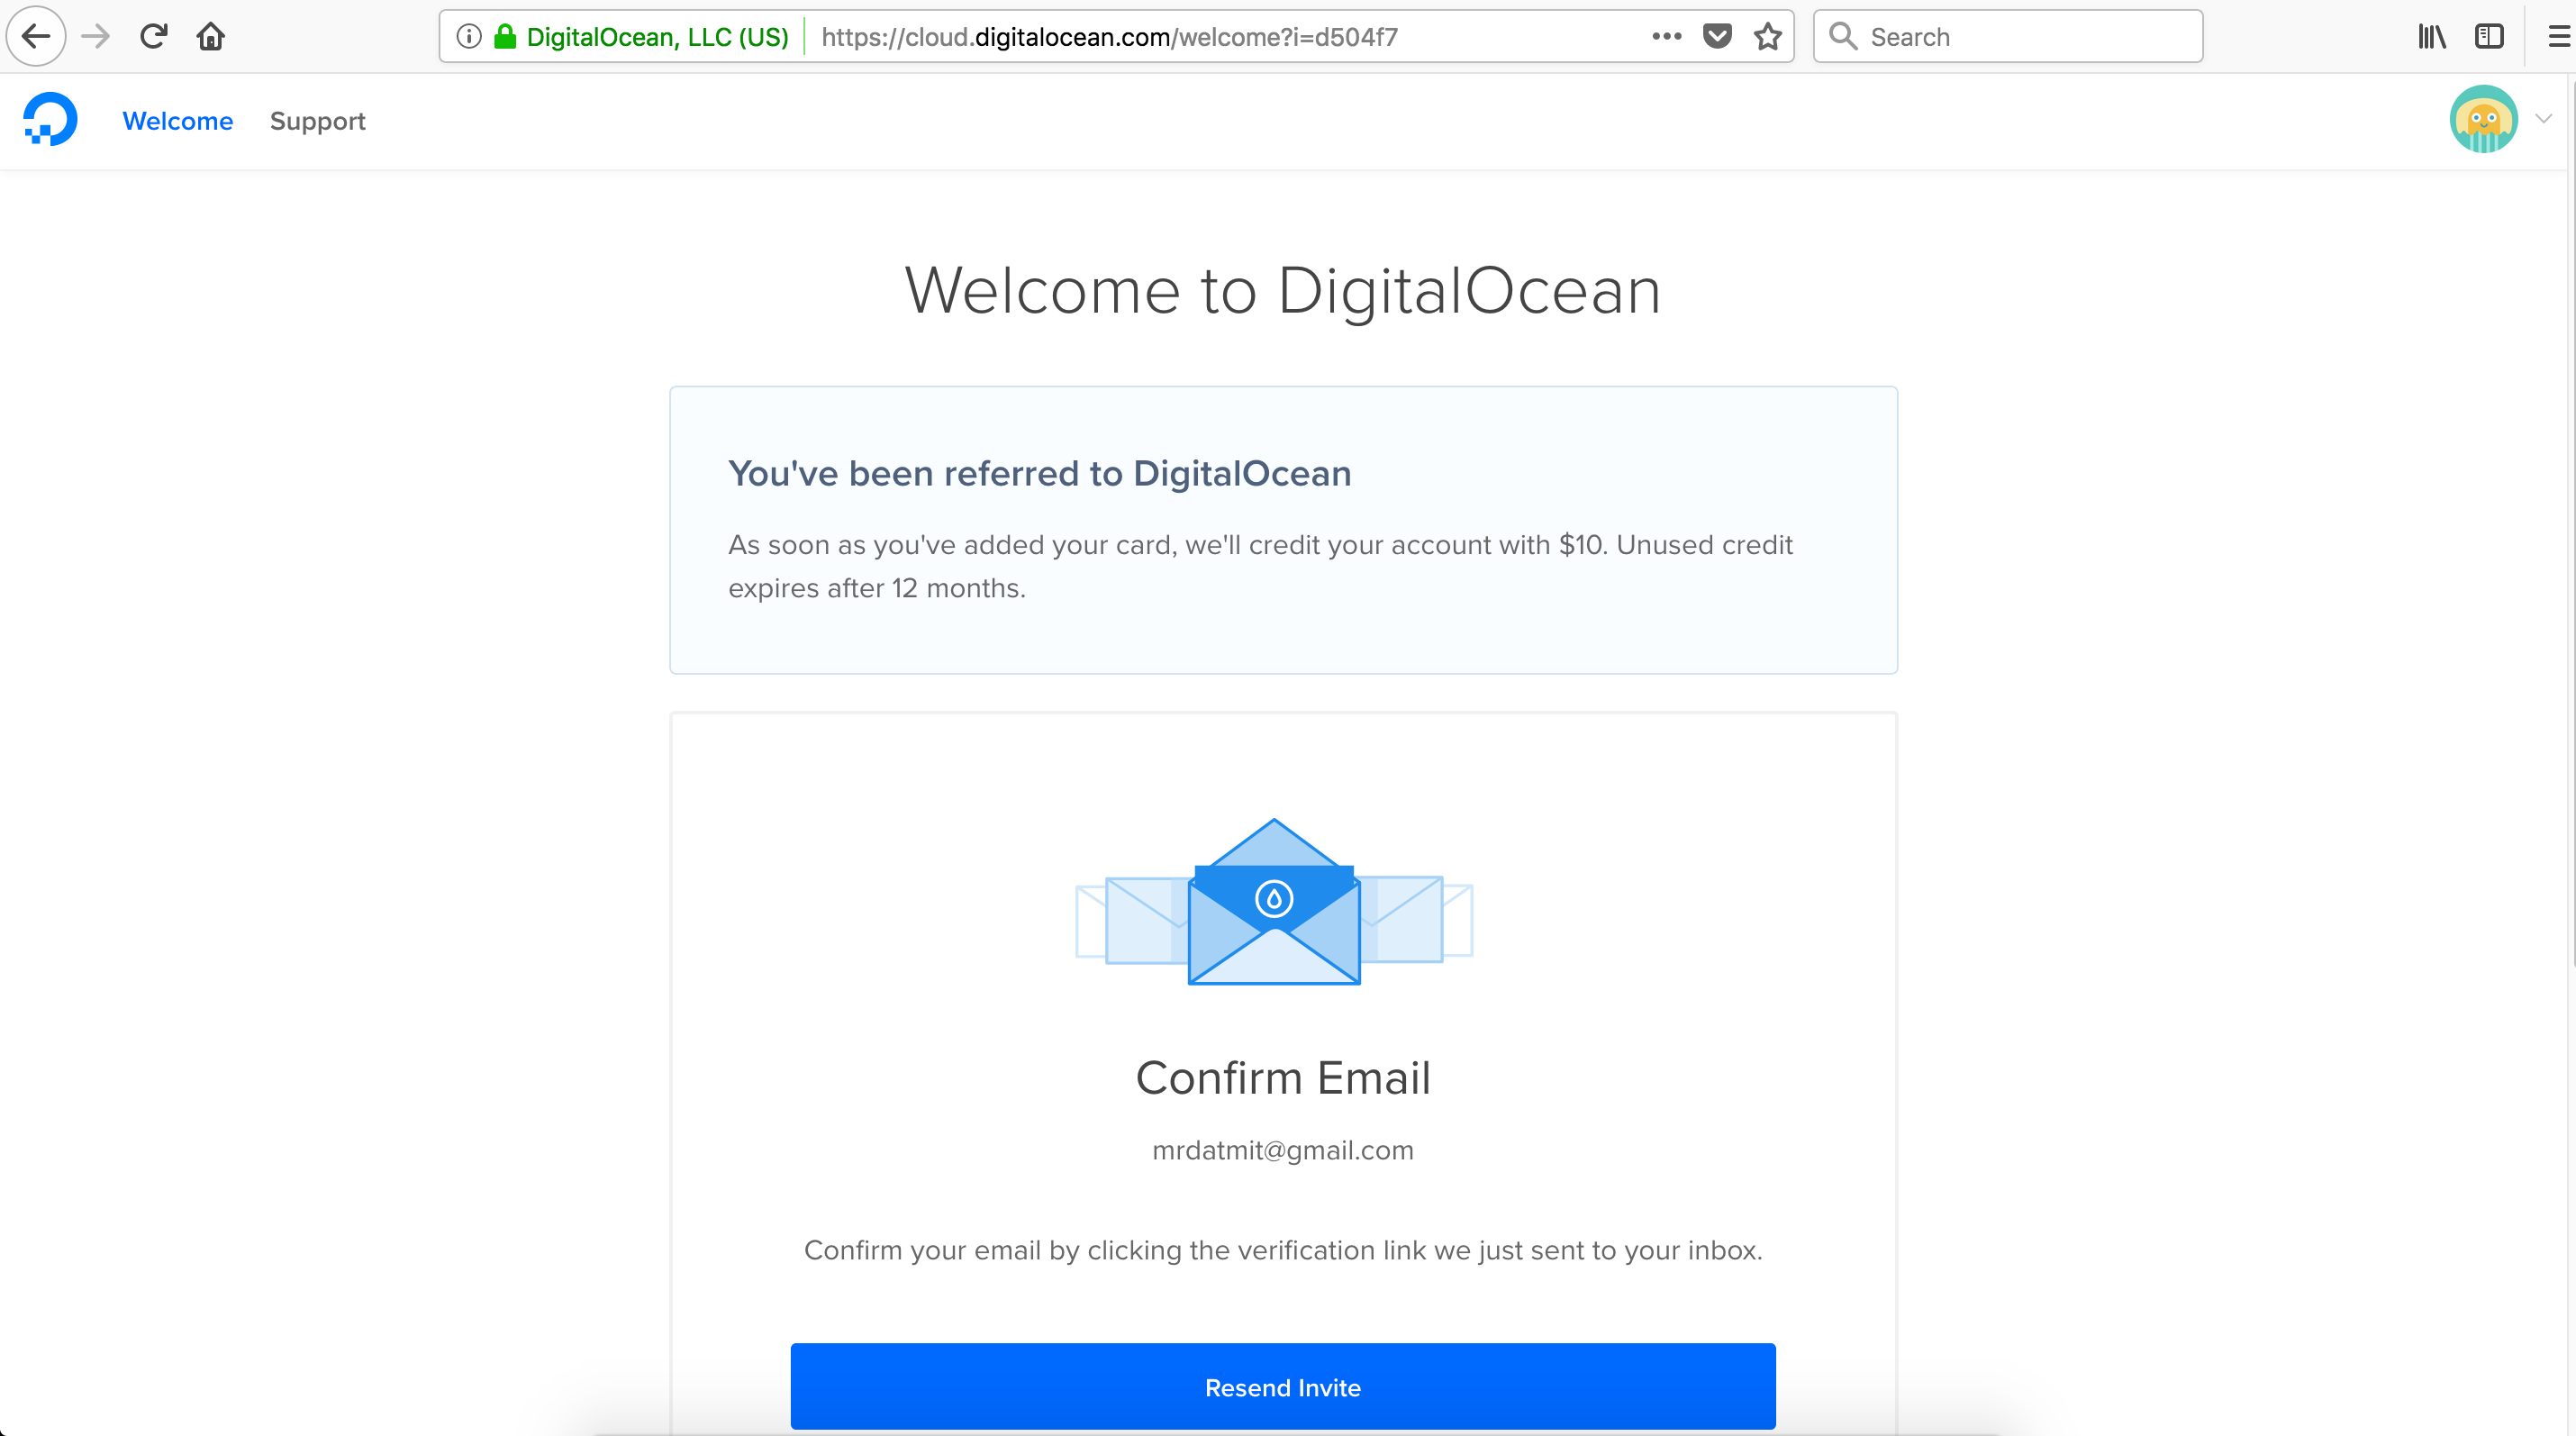 wikivps-welcome to digitalocean